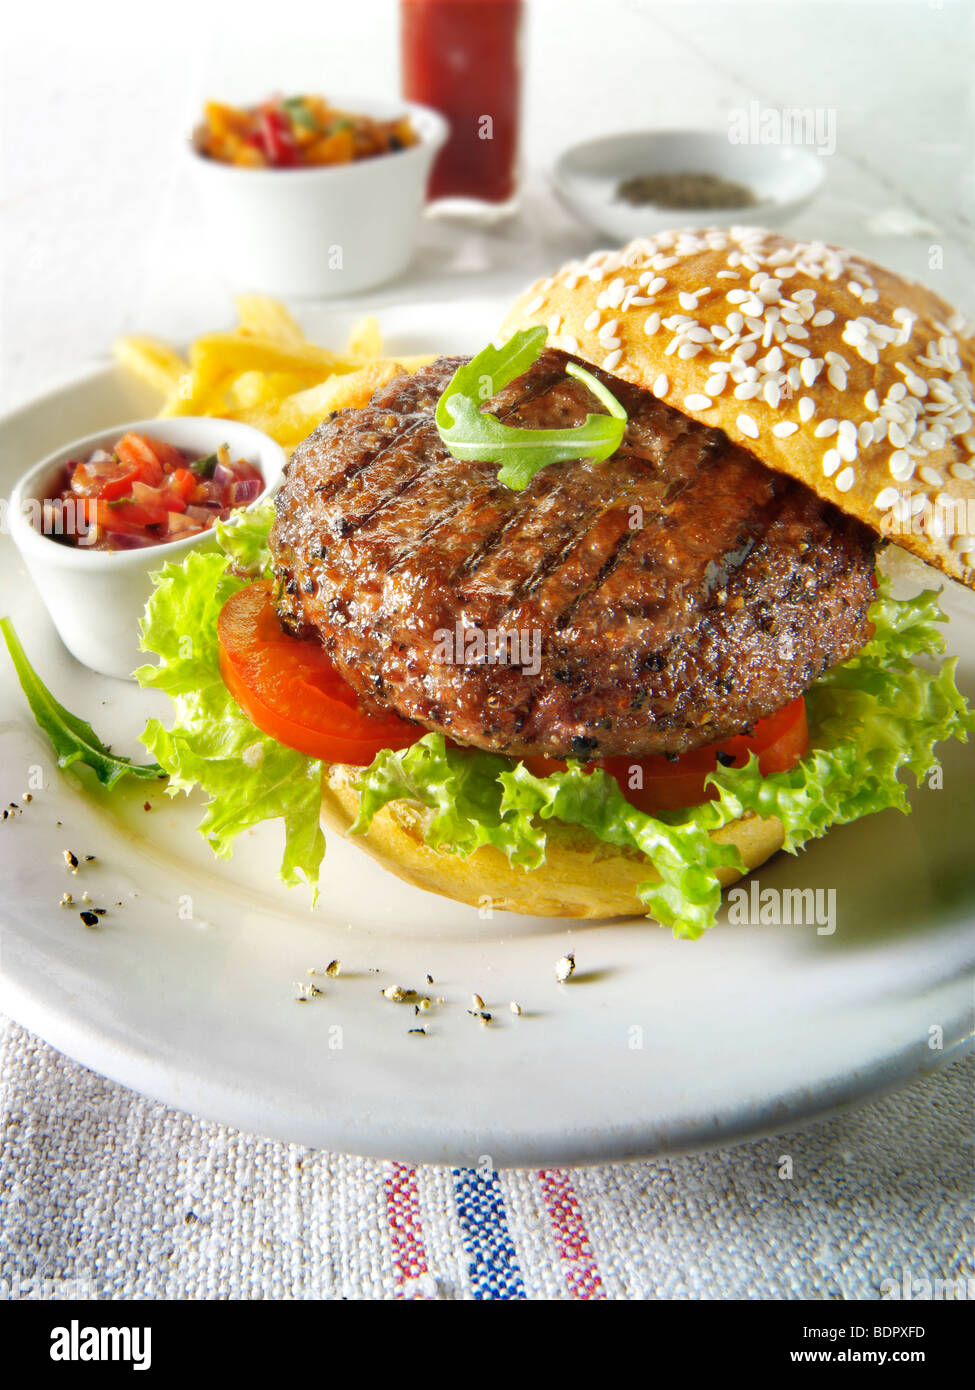 Char grilled beef burger with chips and salad and a seseme bun - Stock Image